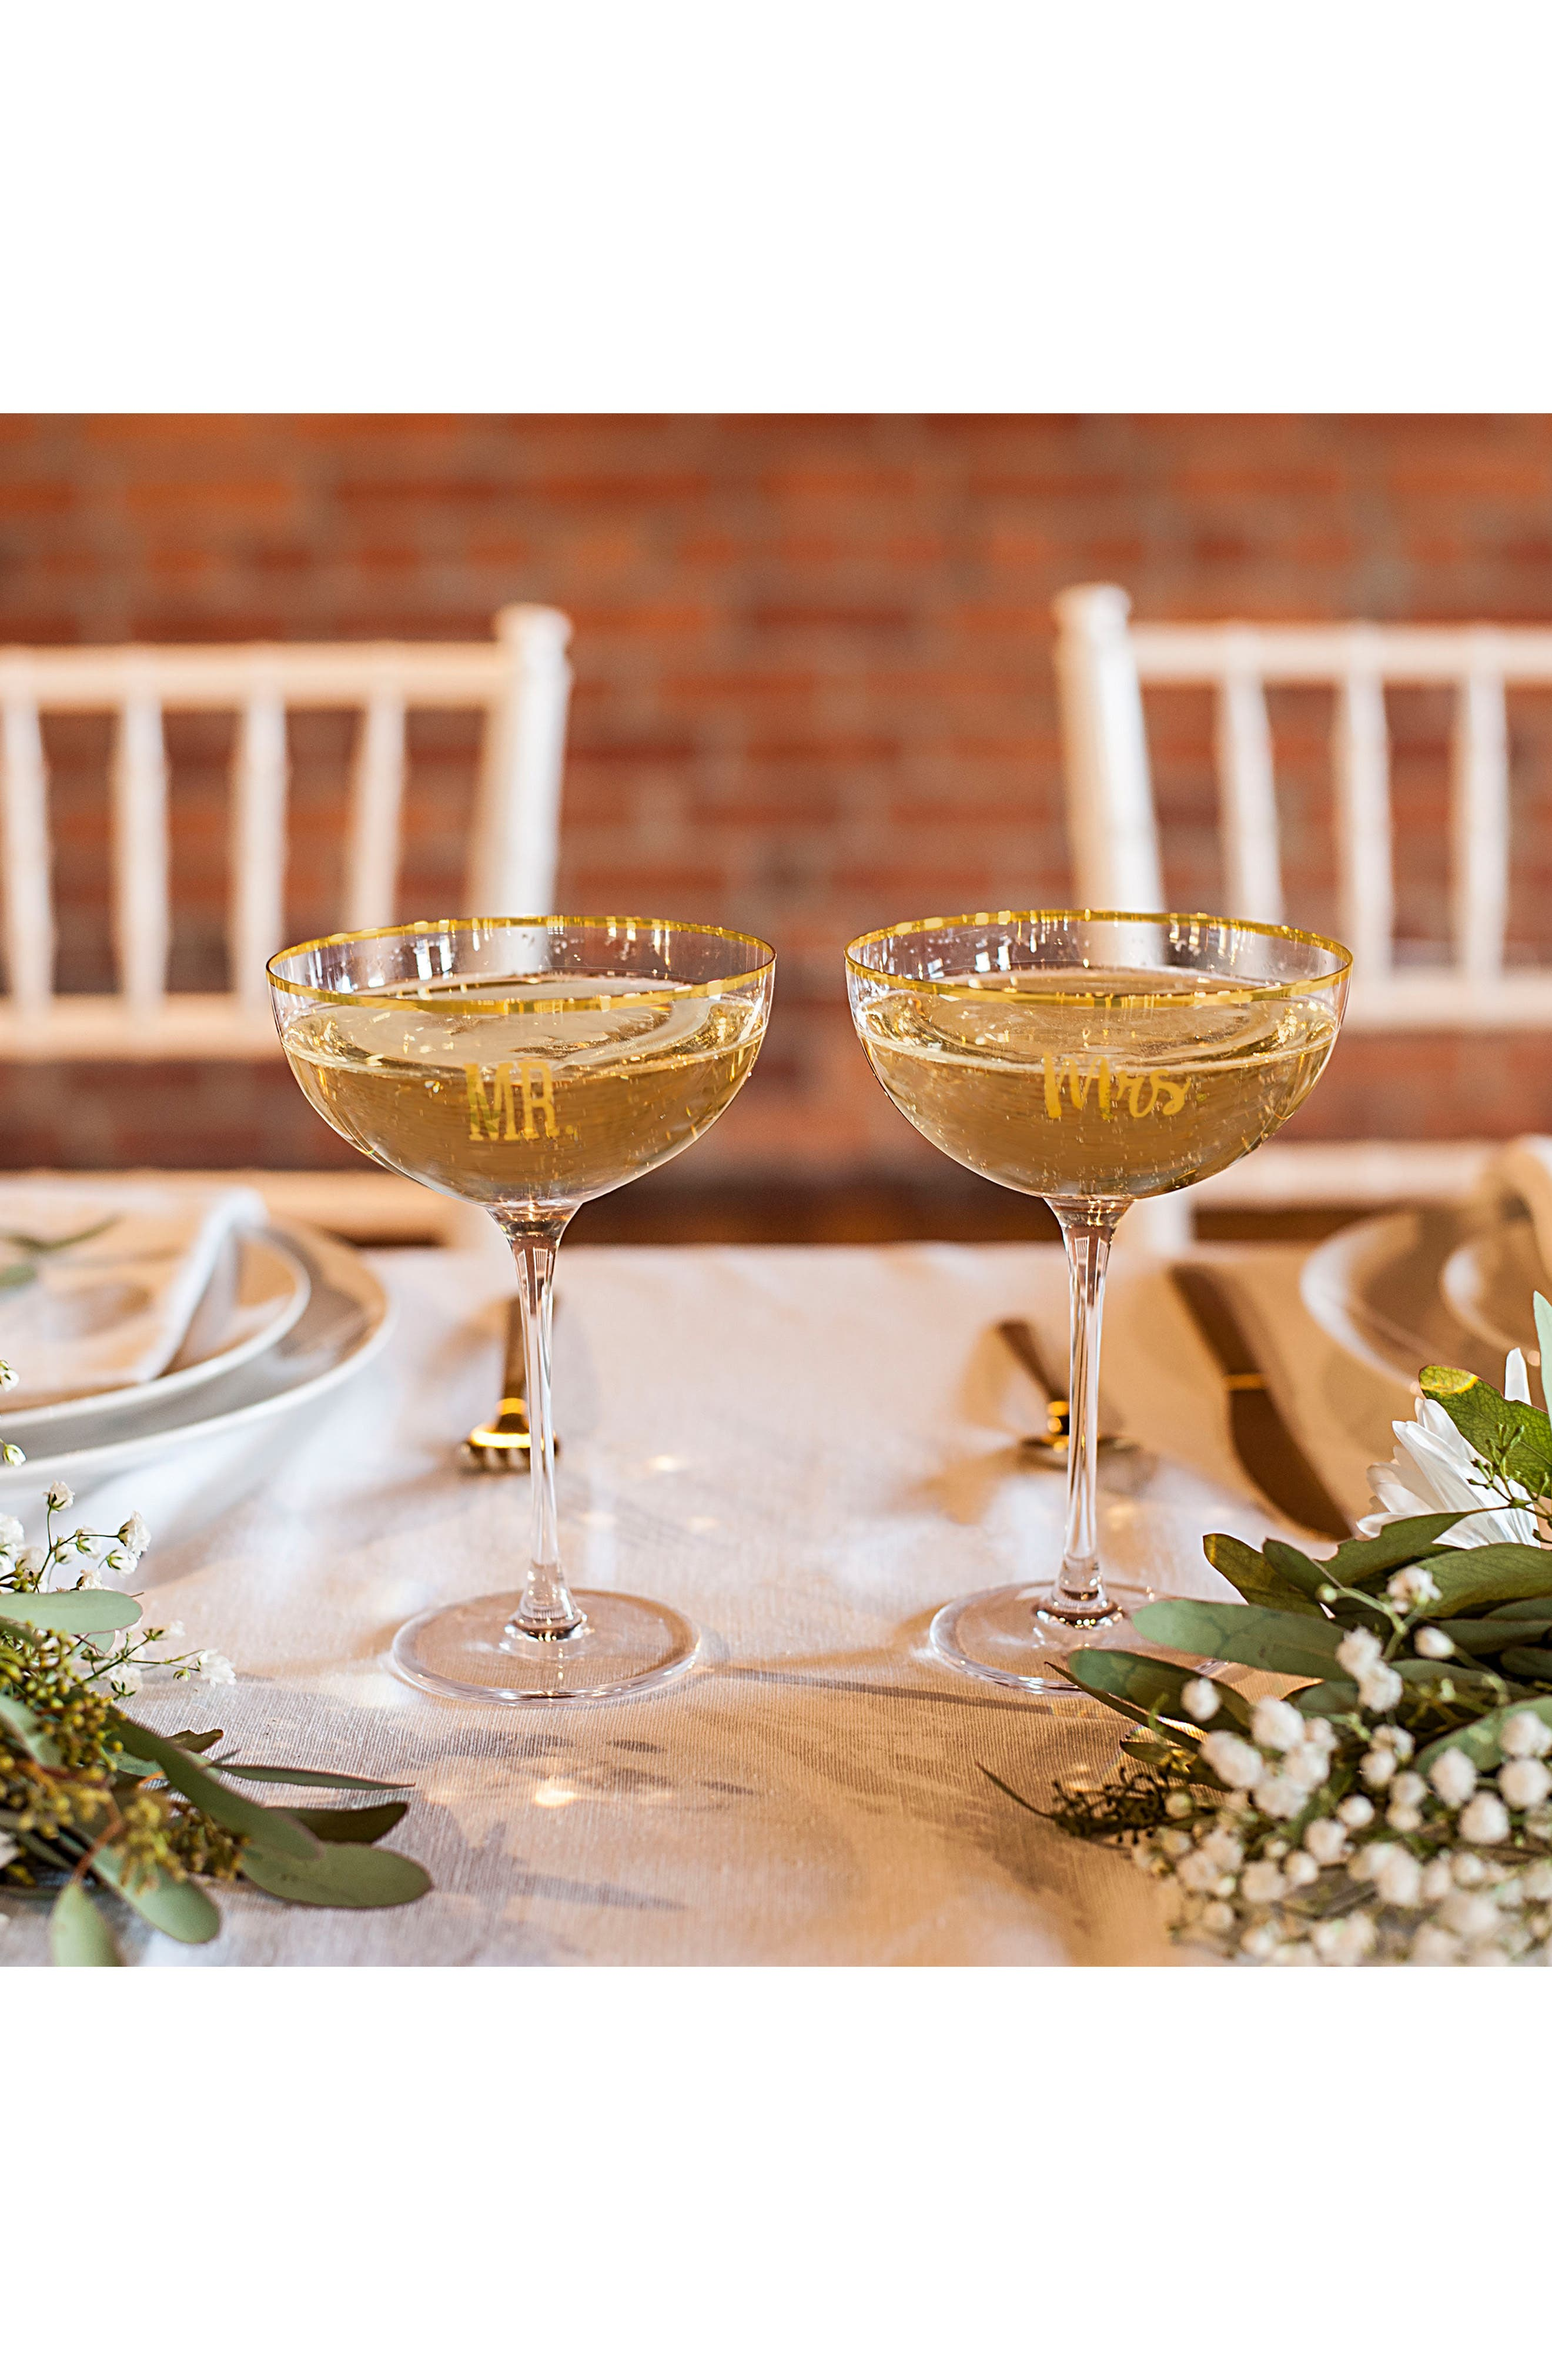 Mr. & Mrs. Set of 2 Champagne Coupe Toasting Glasses,                             Alternate thumbnail 6, color,                             Gold